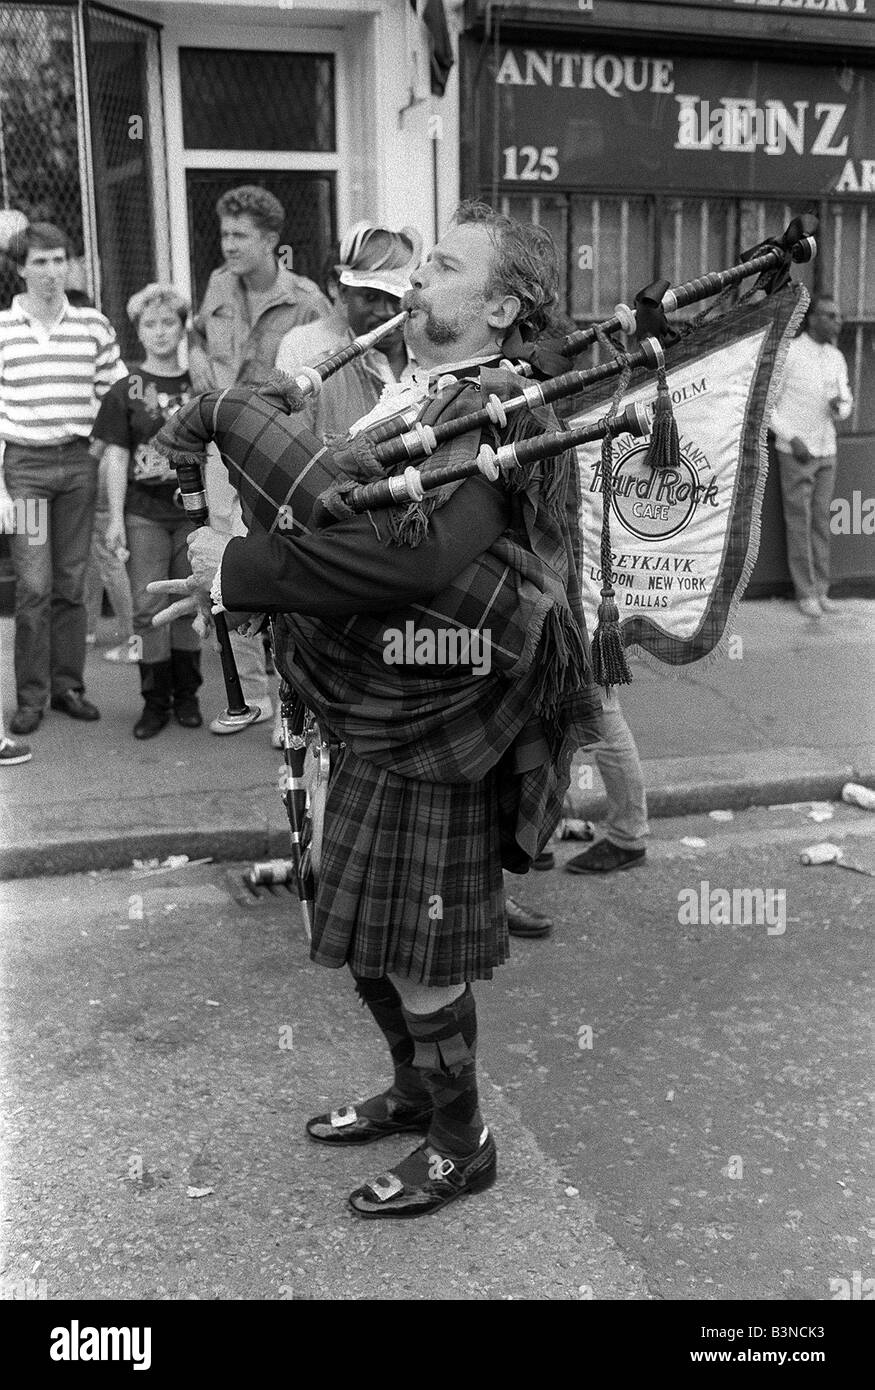 Notting Hill Carnival August 1987 A Scottish bag pipe player plays to residents in the street of Notting Hill - Stock Image